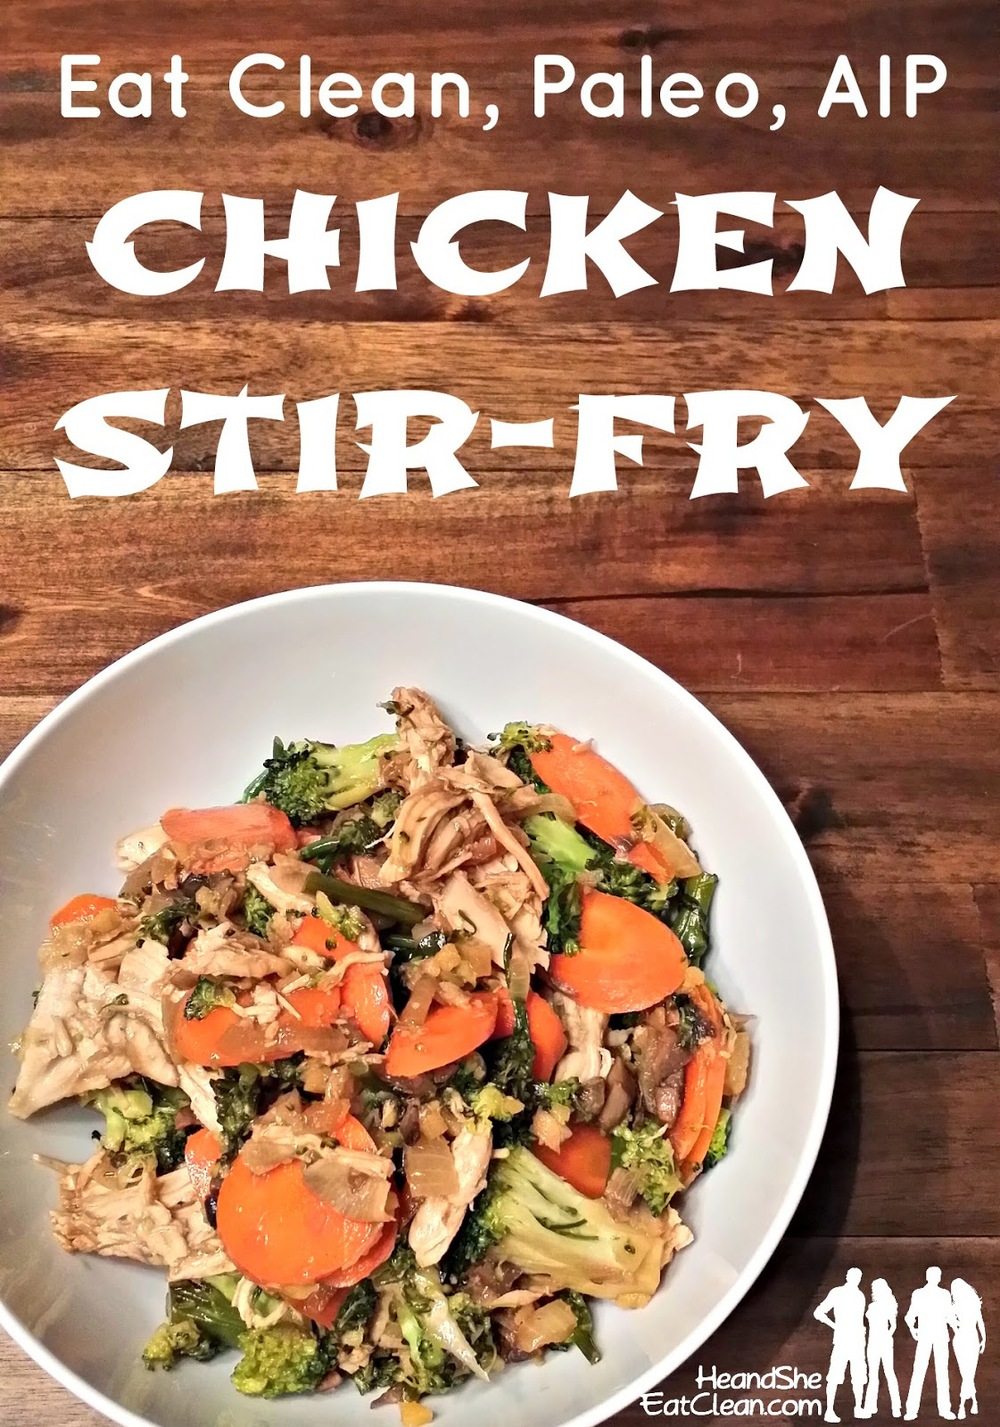 chicken-stir-fry-stirfry-autoimmune-paleo-aip-proticol-cookbook-recipe-asian-food-wok-he-she-eat-clean.jpg